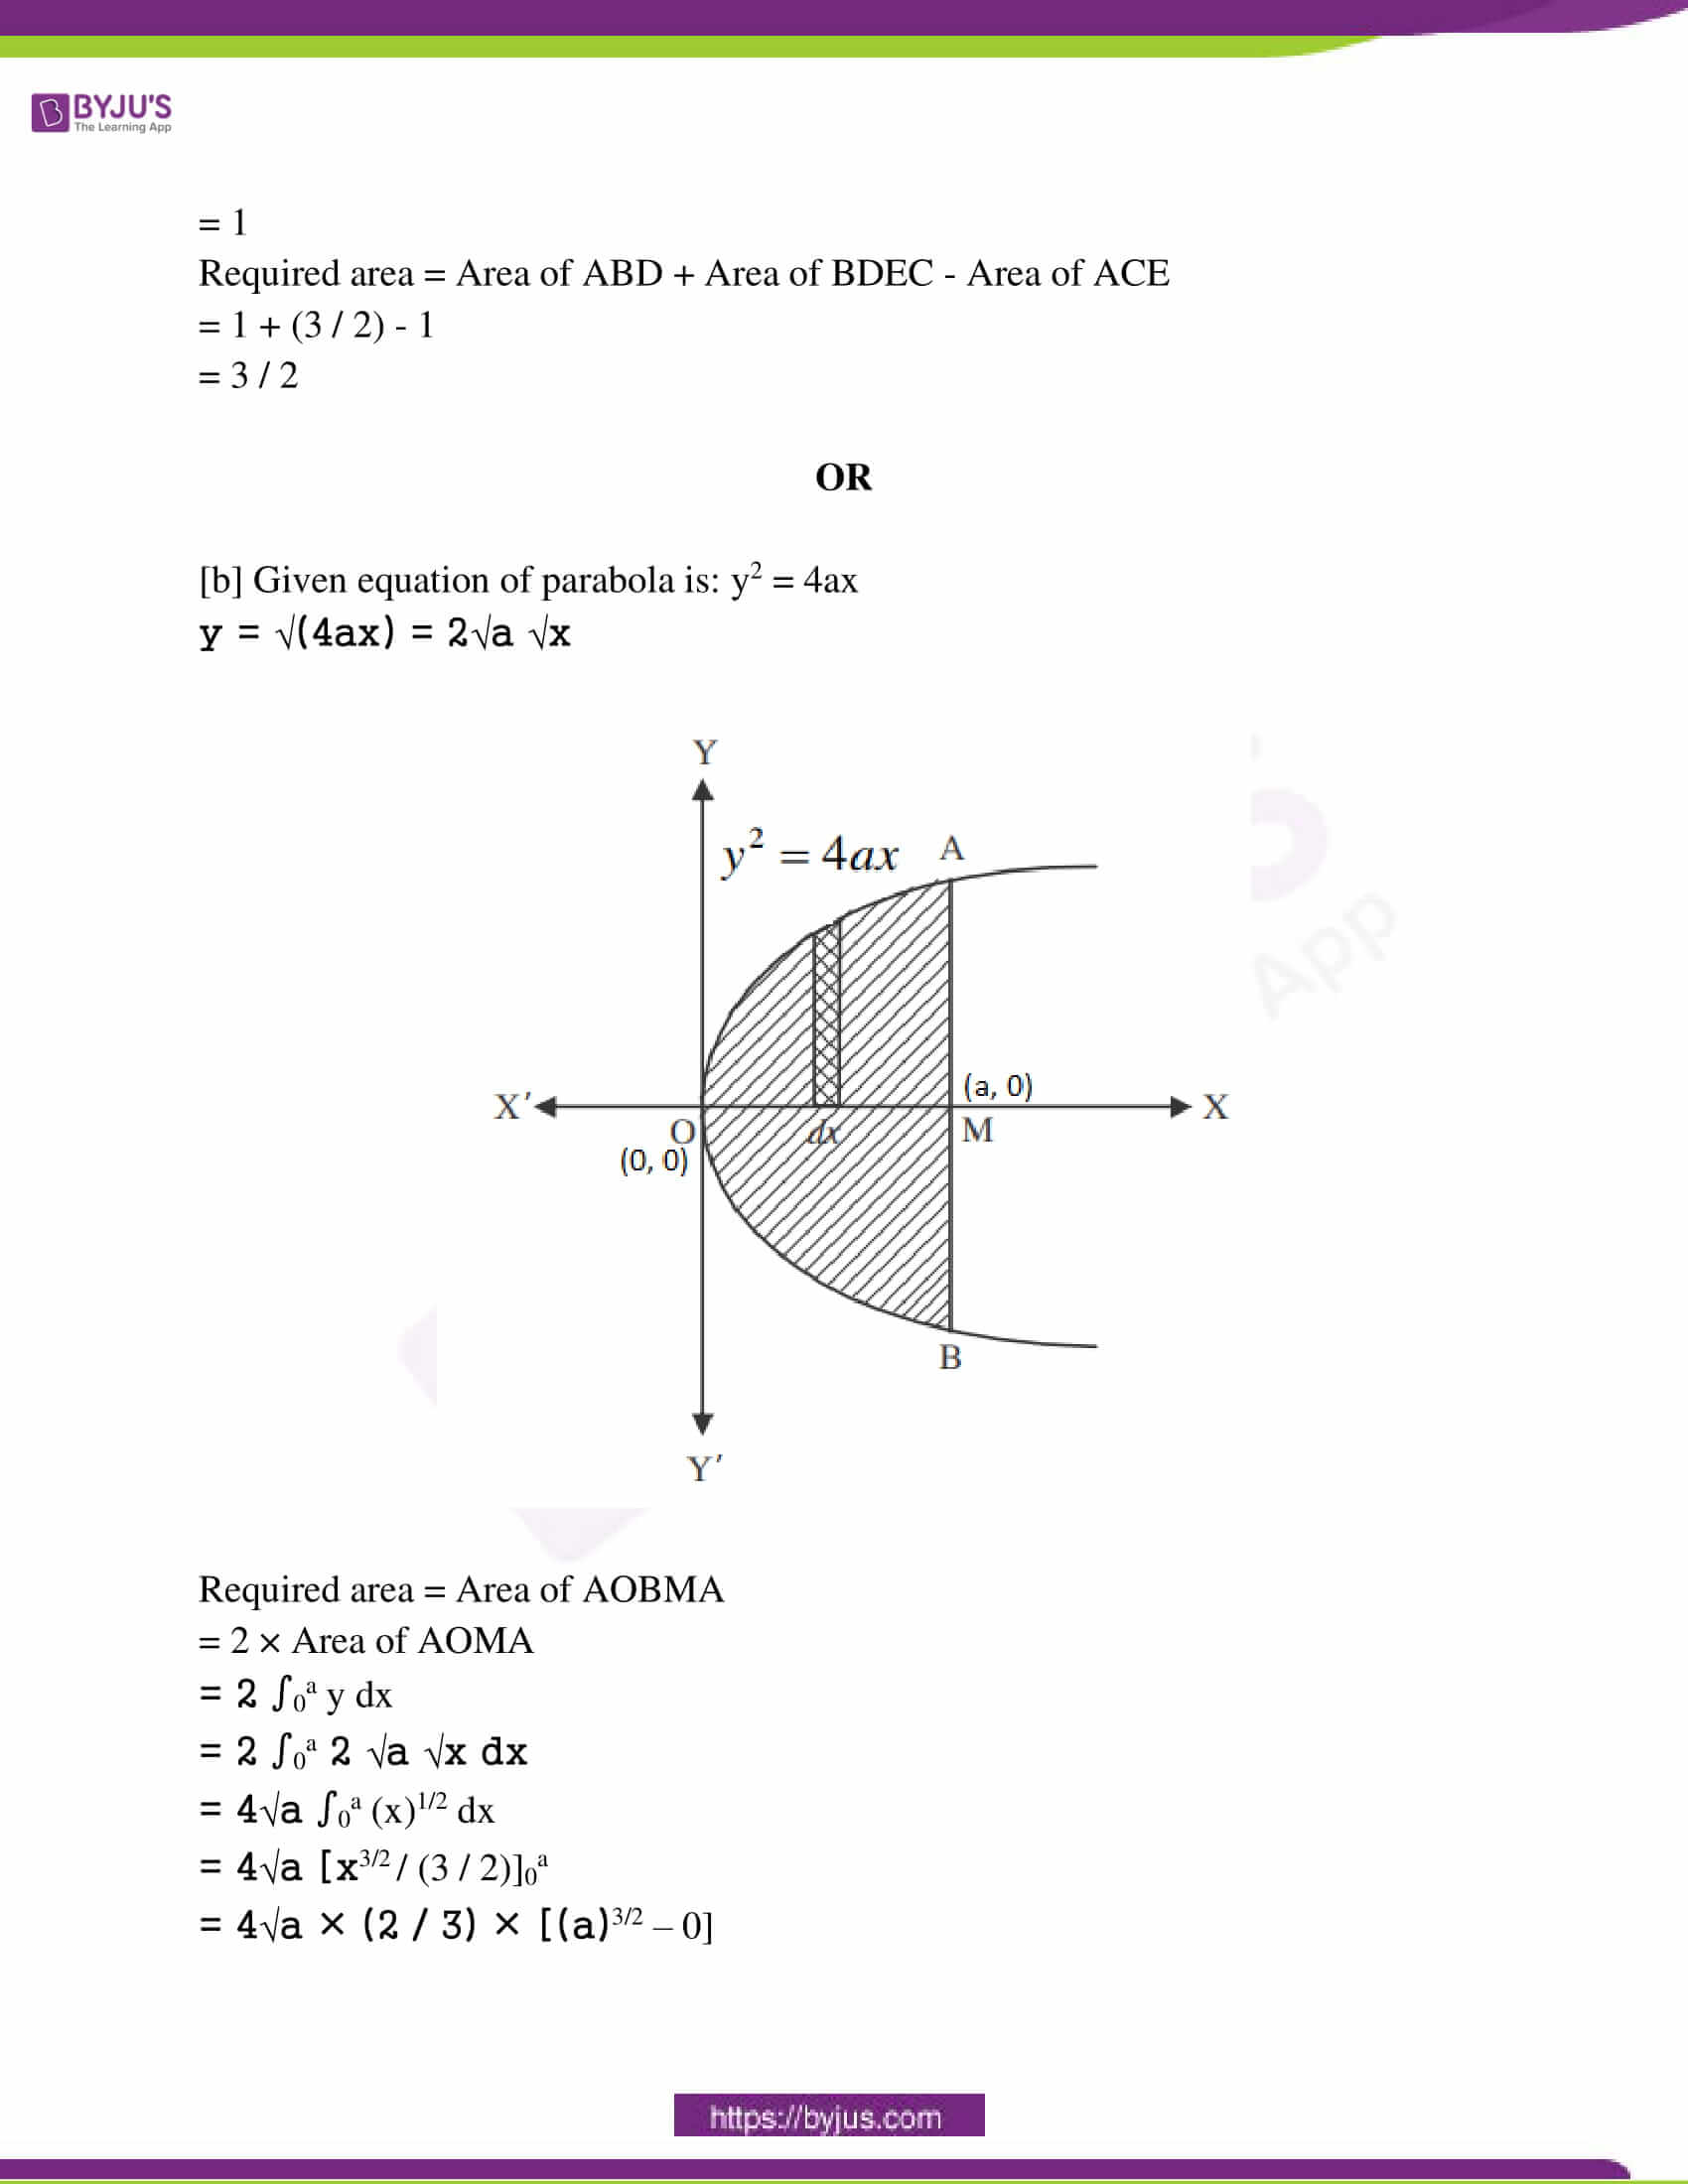 mp board class 12 questions and answers maths 2020 38